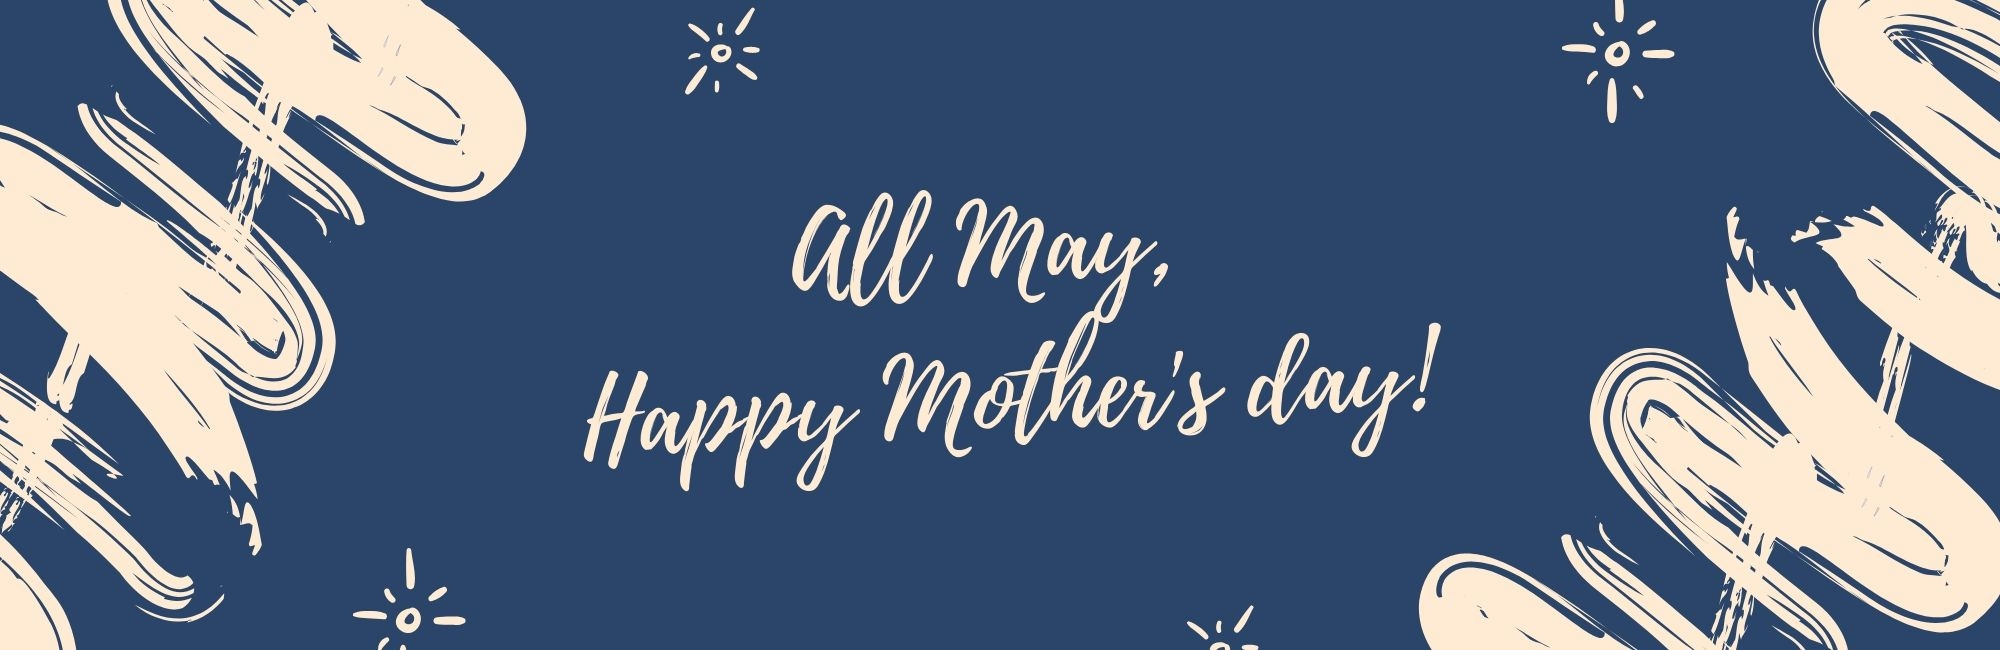 All May, Happy Mother's Day ! Frypan gift boxes, Saute pans and kitchen knives promotions!